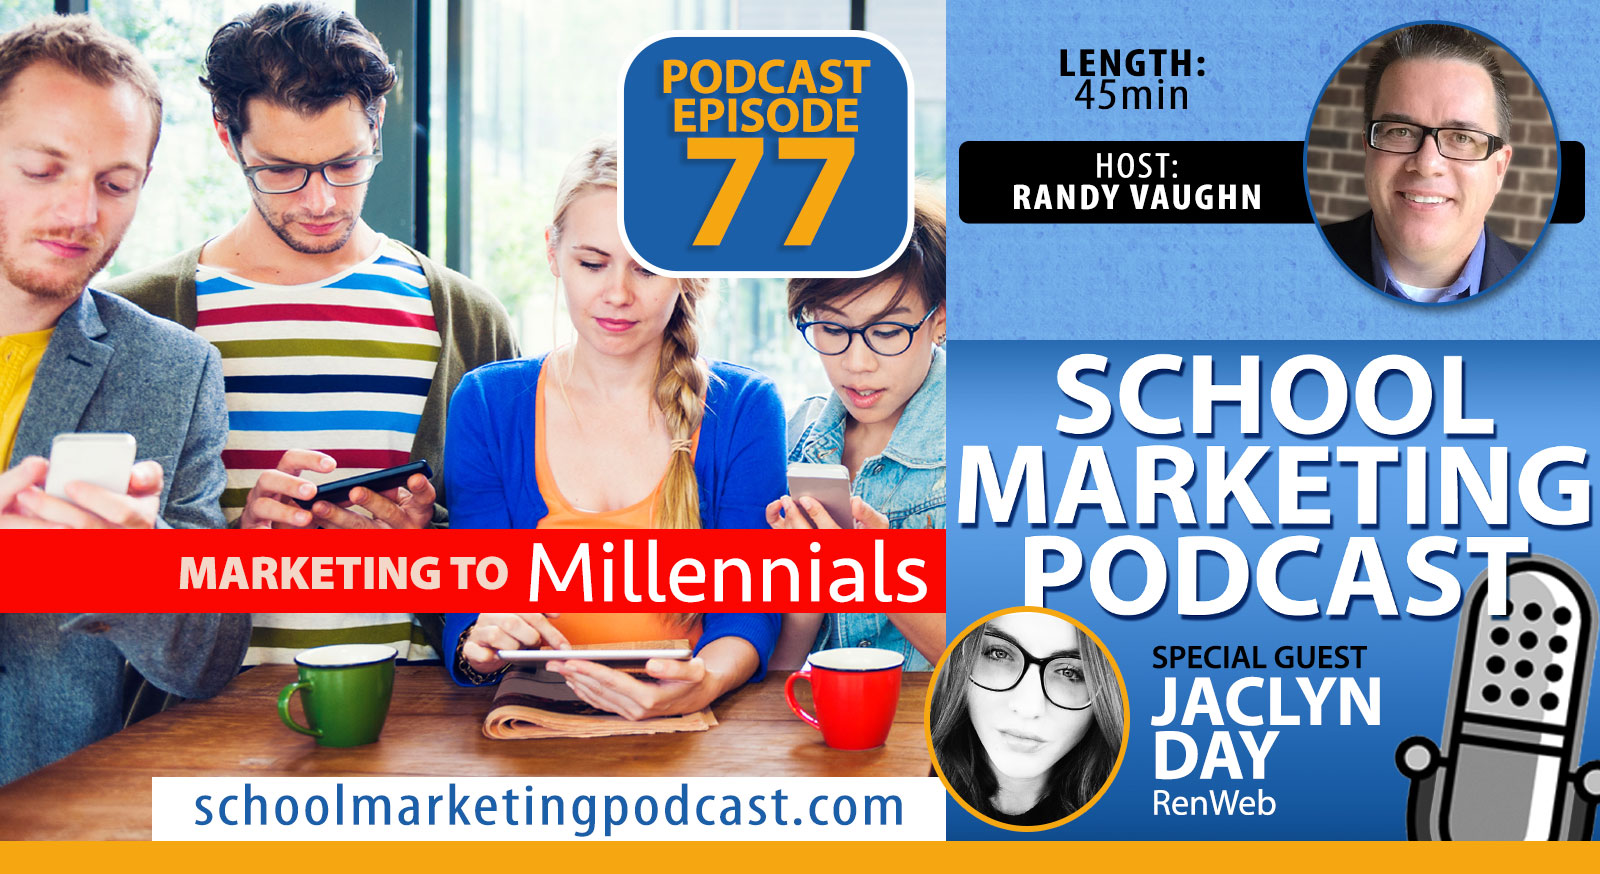 Marketing to Millennials - School Marketing Podcast Interview w @RenWebPower Jaclyn Day & @SchoolMktg